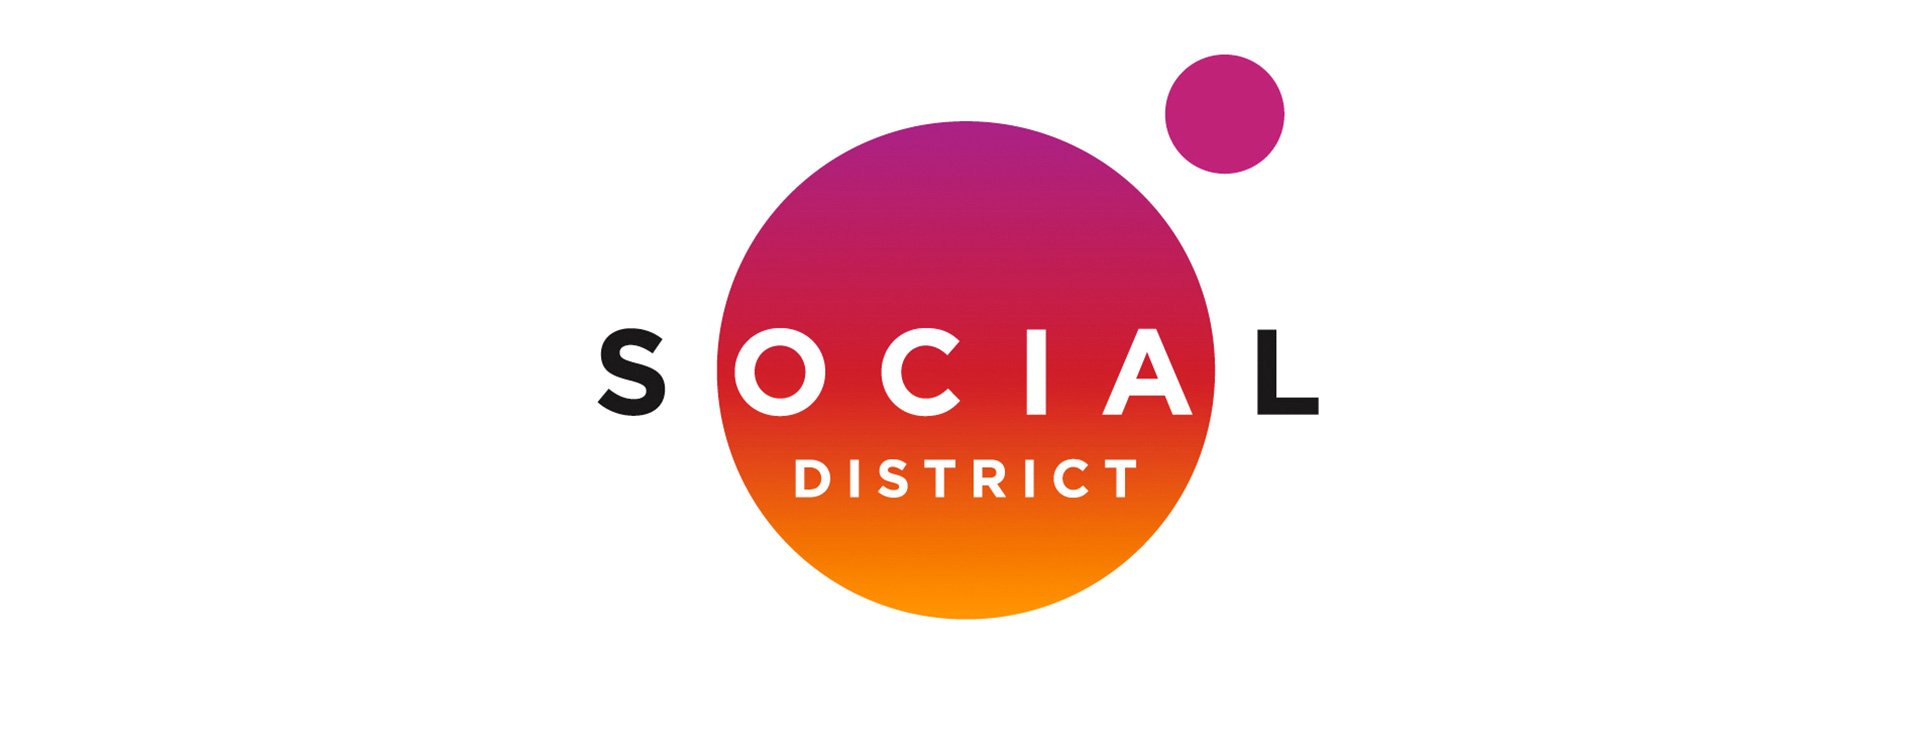 social district